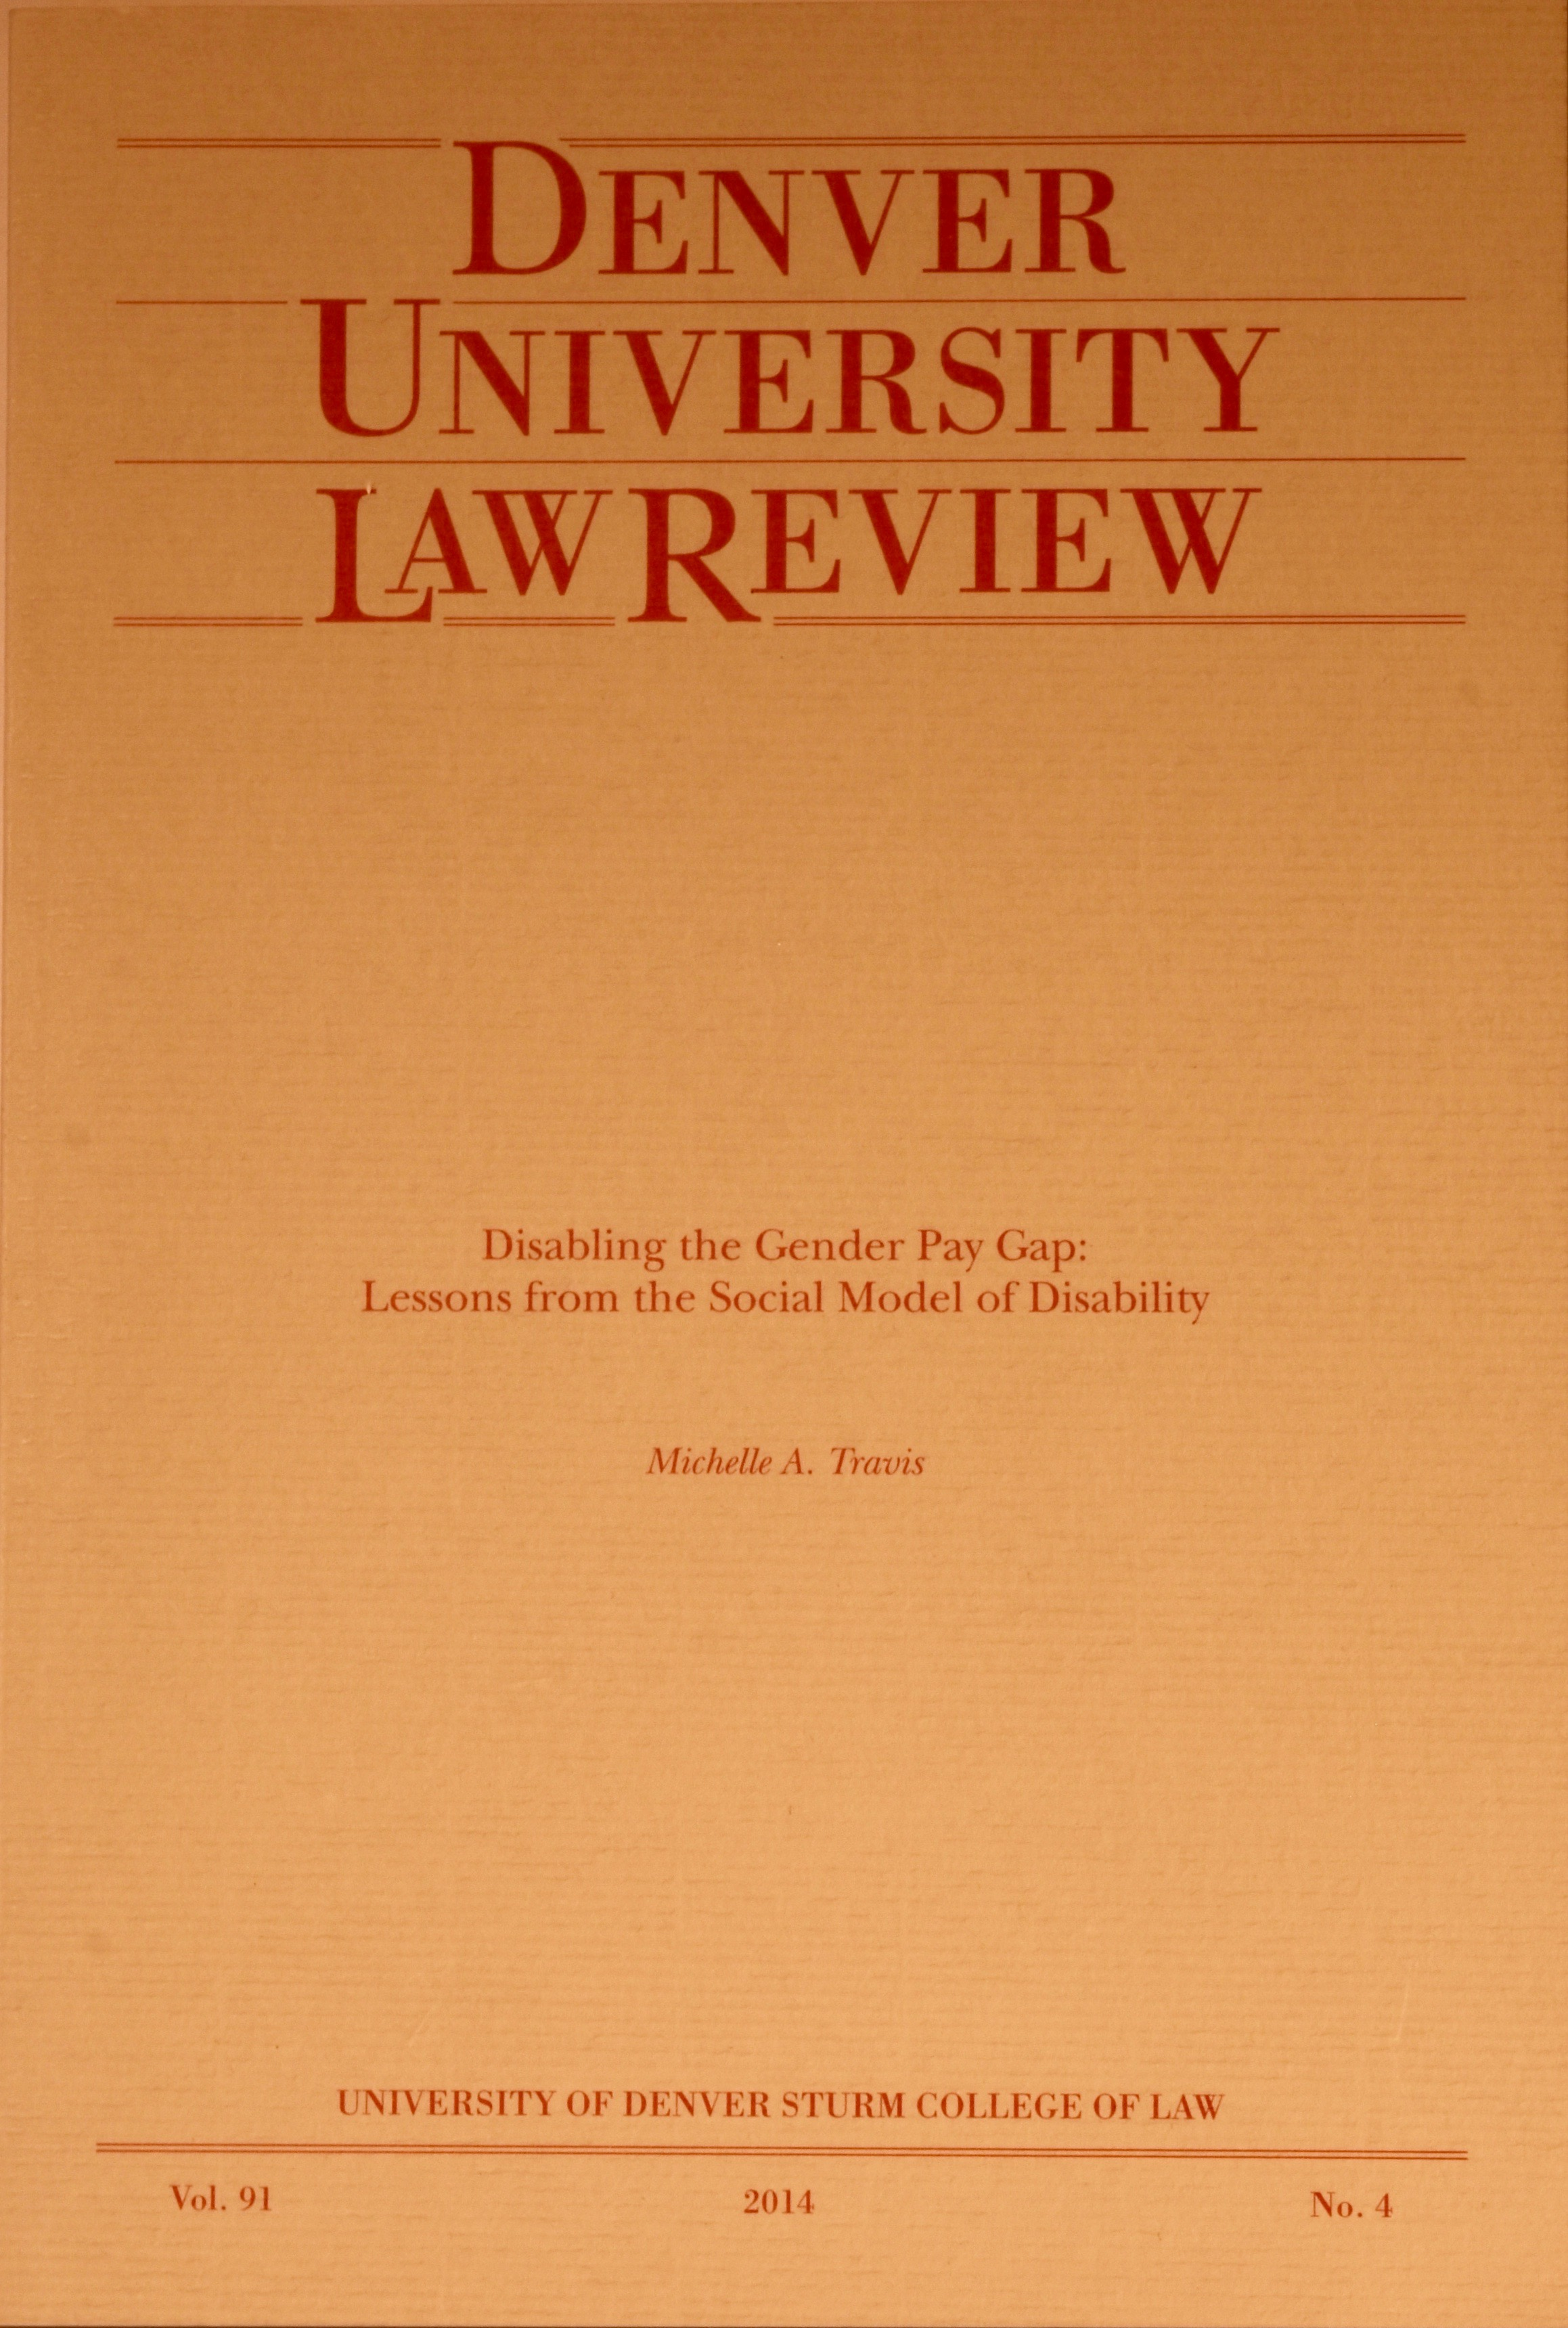 Denver University Law Review